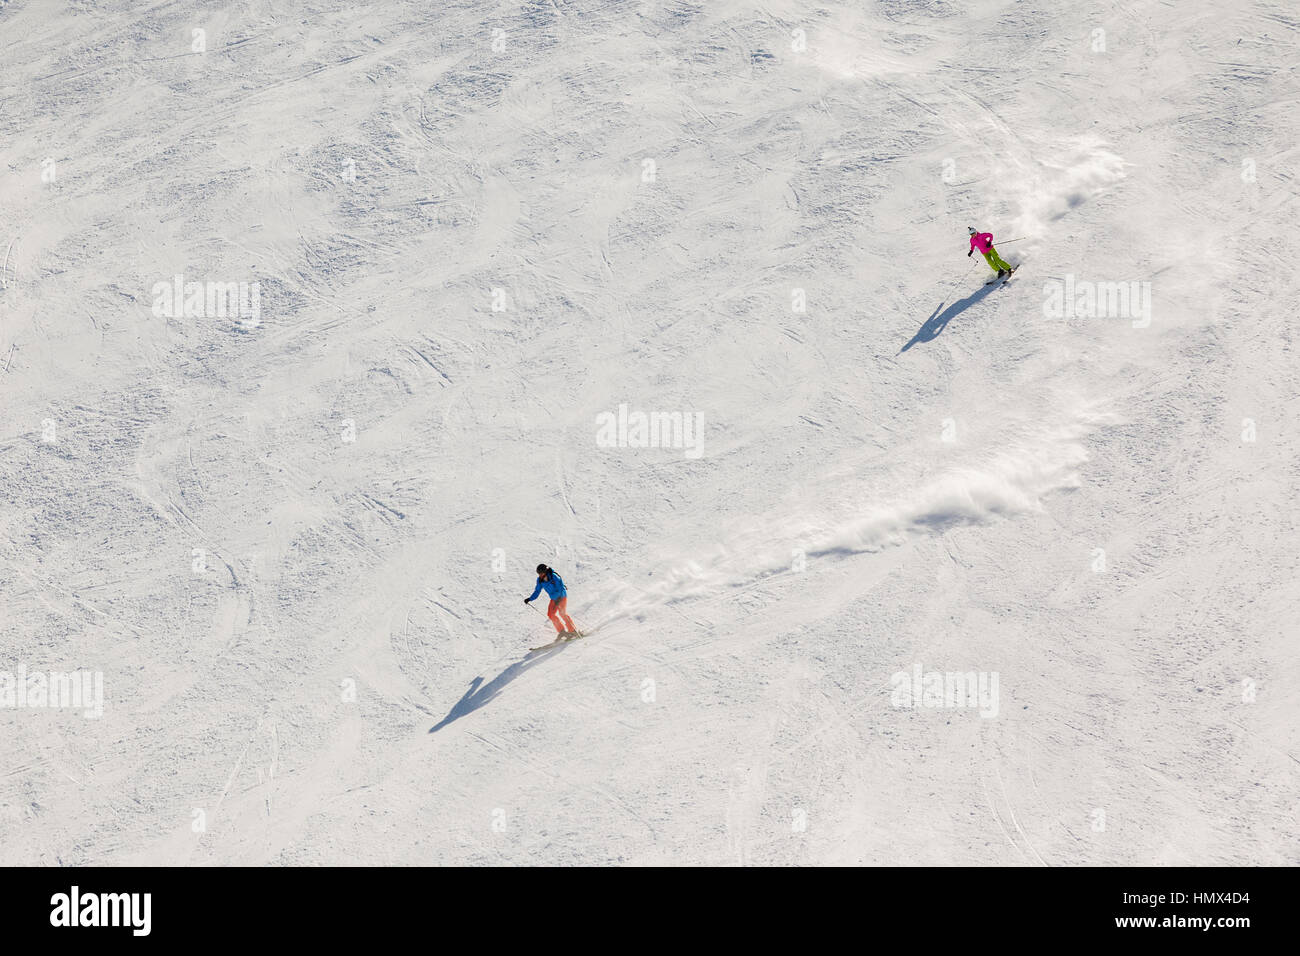 Two skiers on a steep black ski run with trails of snow dust behind them. - Stock Image